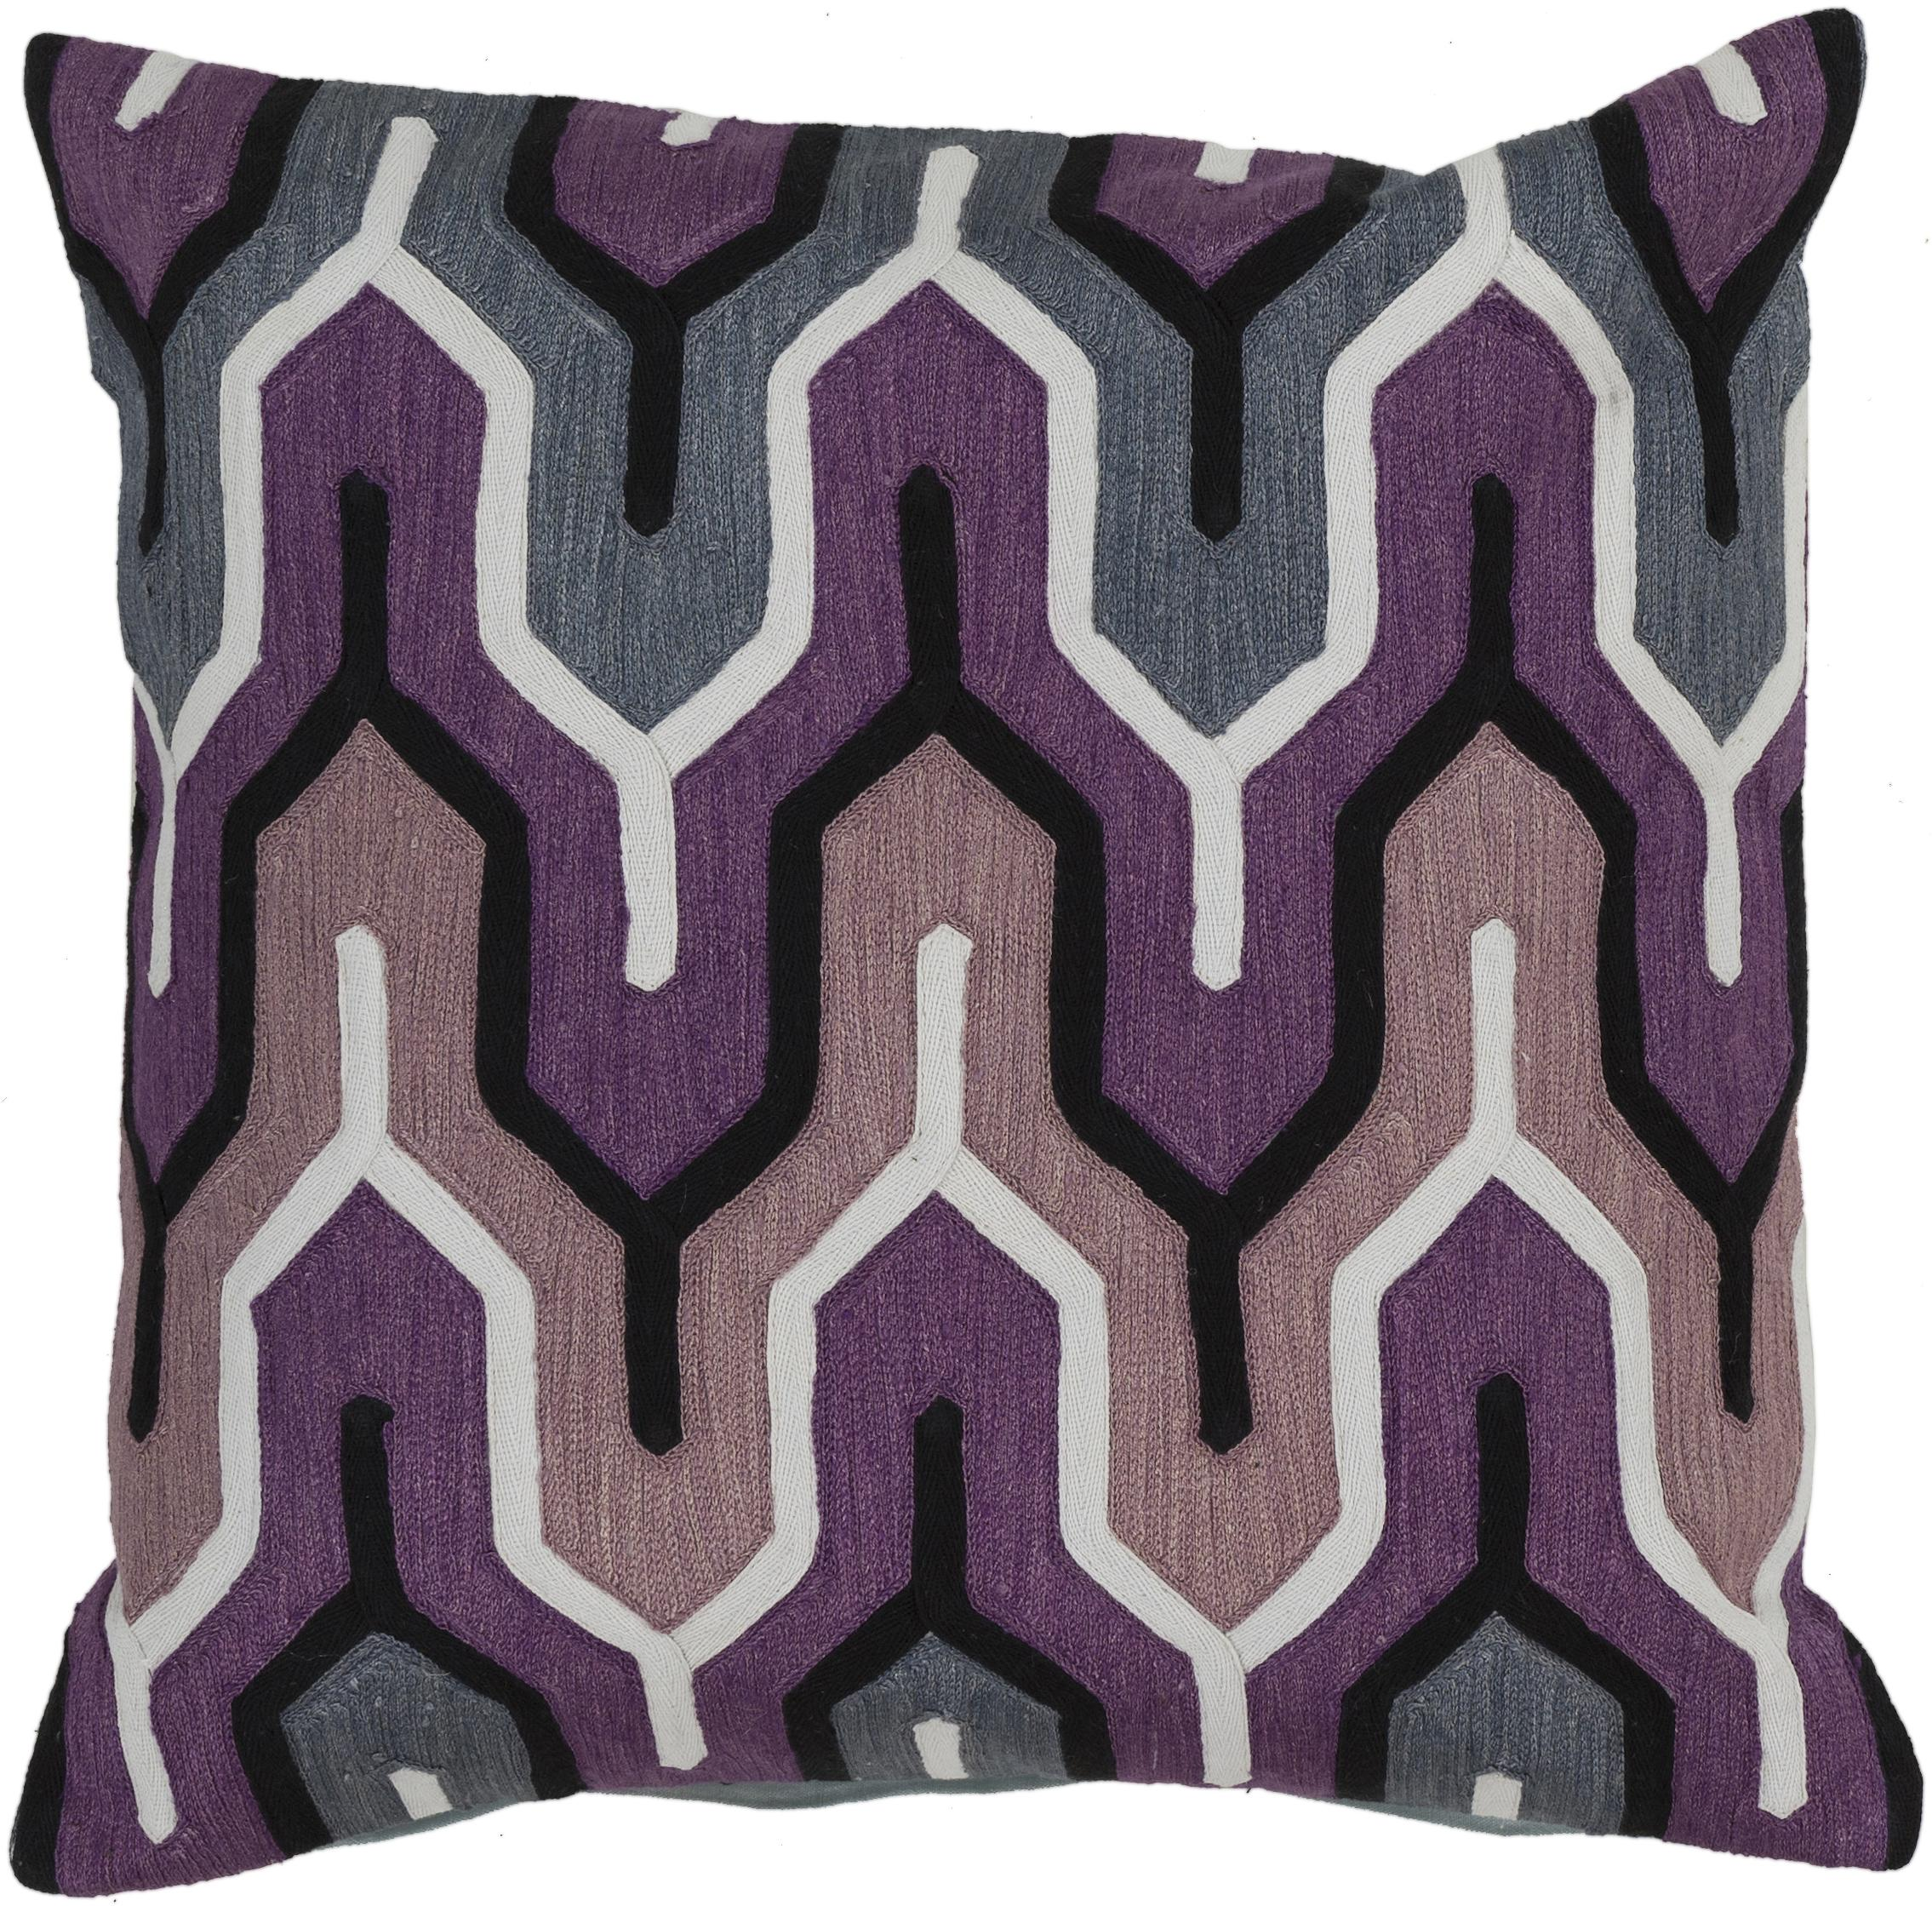 "Surya Pillows 18"" x 18"" Pillow - Item Number: AR107-1818P"